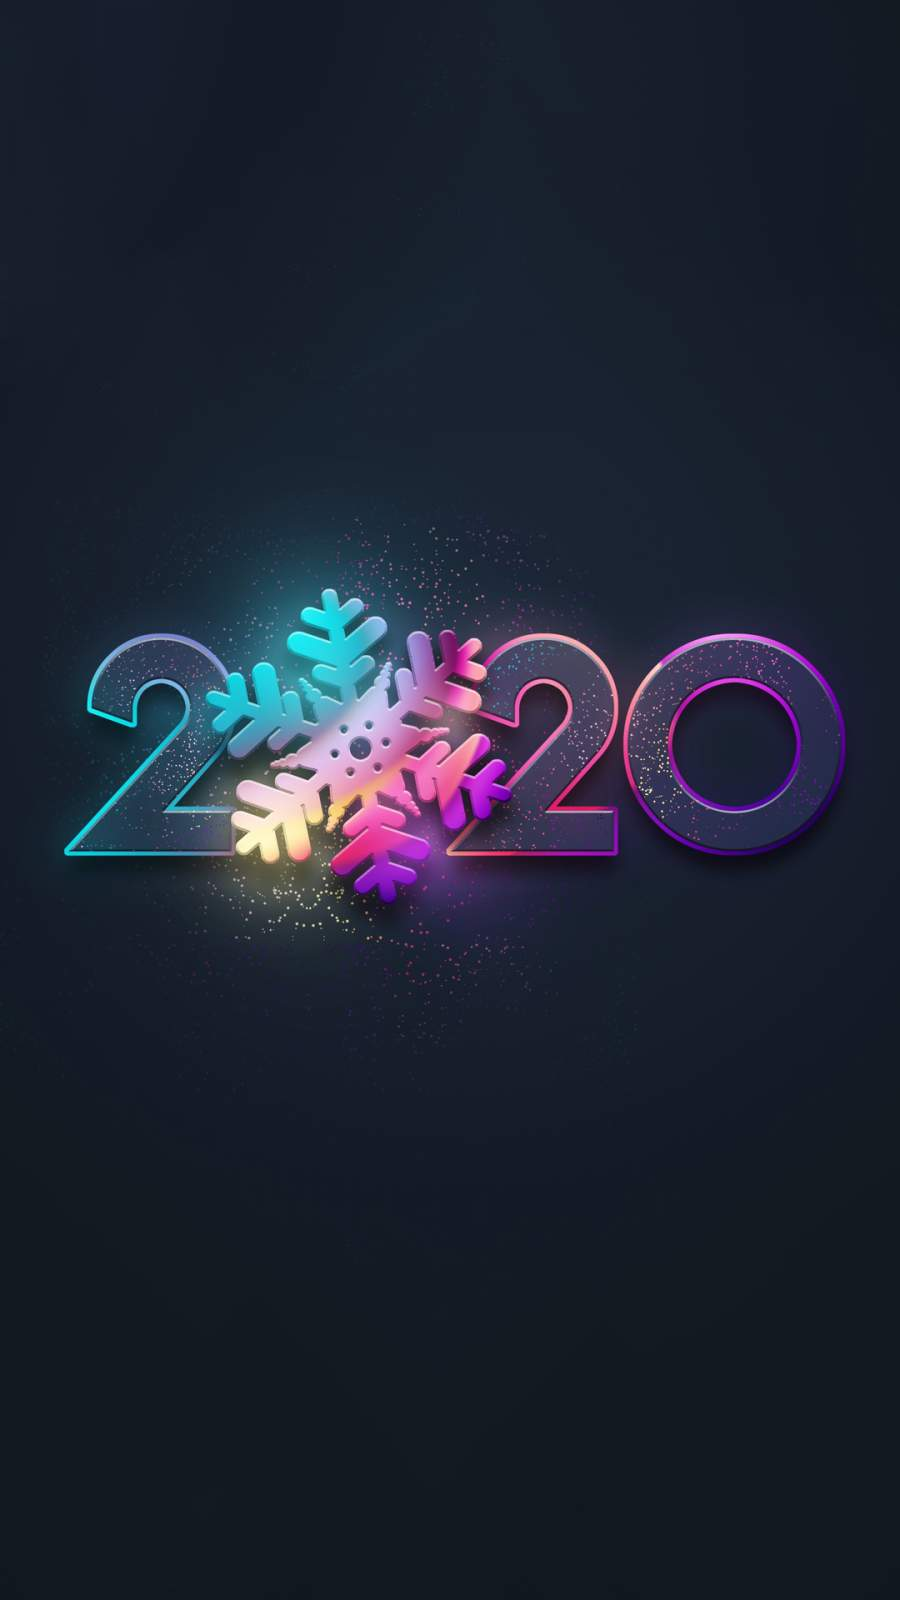 2020 New Year iPhone Wallpaper